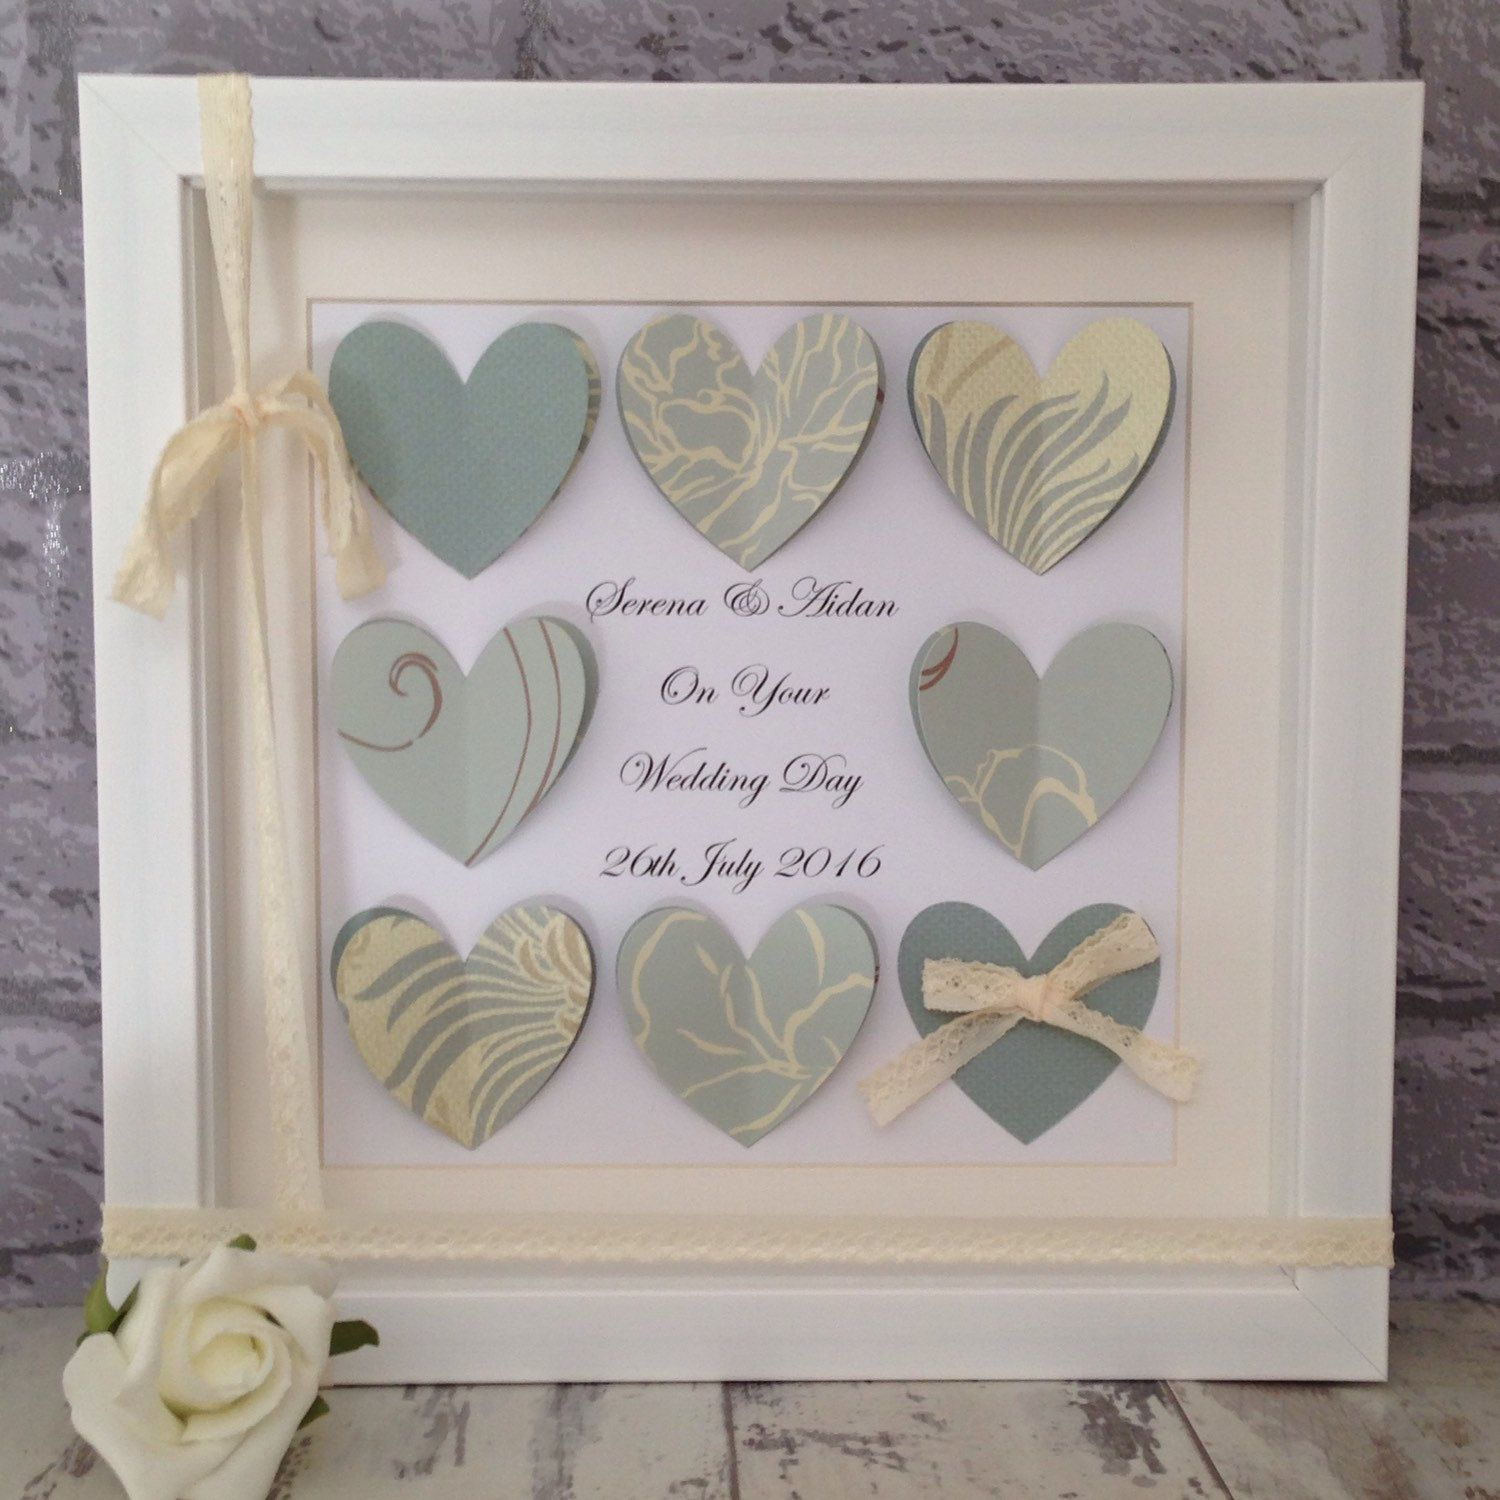 Beautiful Unique Wedding Gifts Available To Order From My Shop If You Like The Design